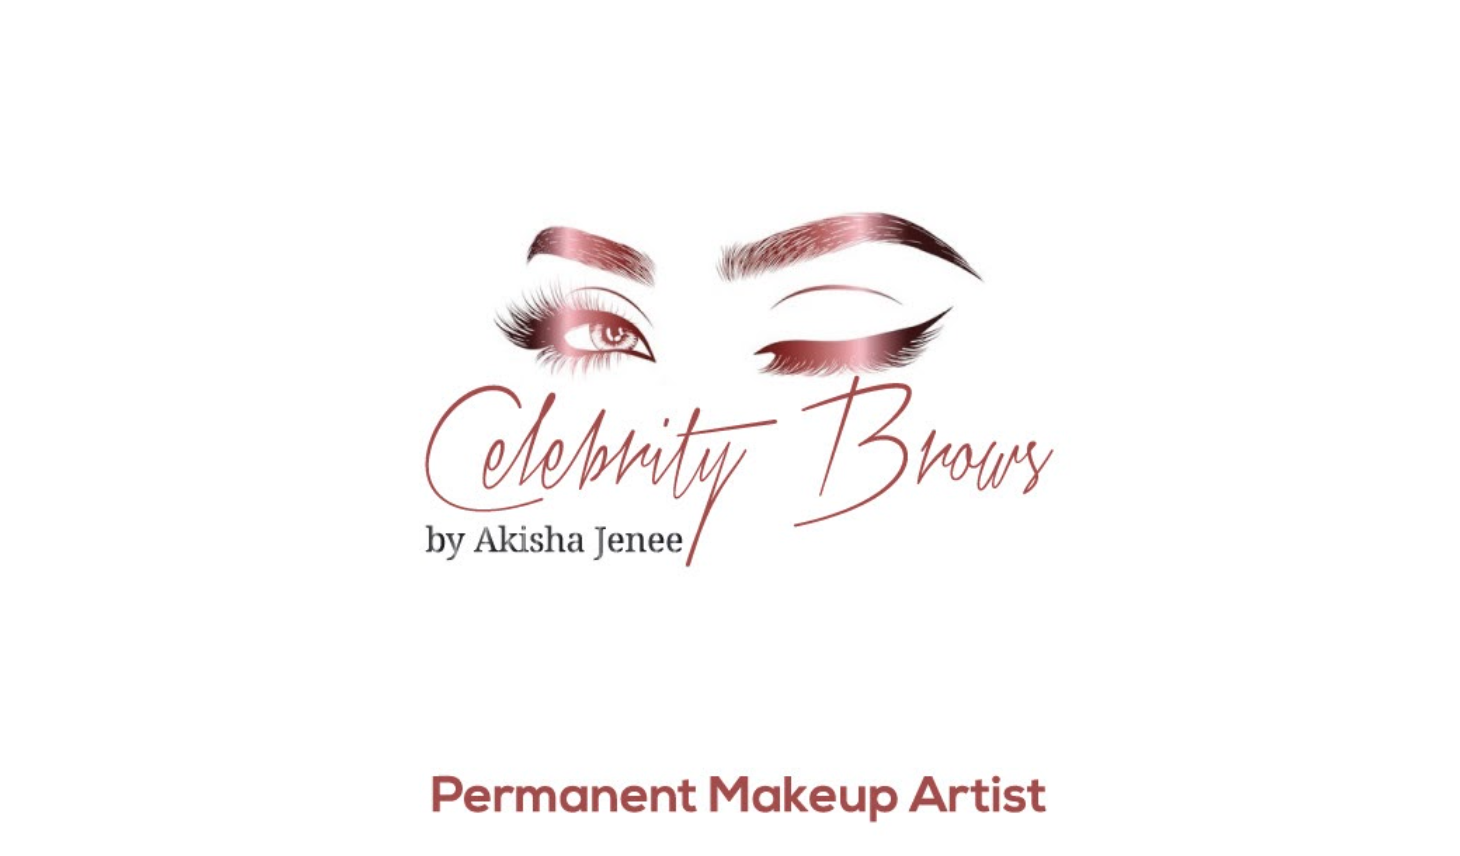 Celebrity Brows by Akisha Jenee, LLC Introducing Long-Lasting Beauty Makeover